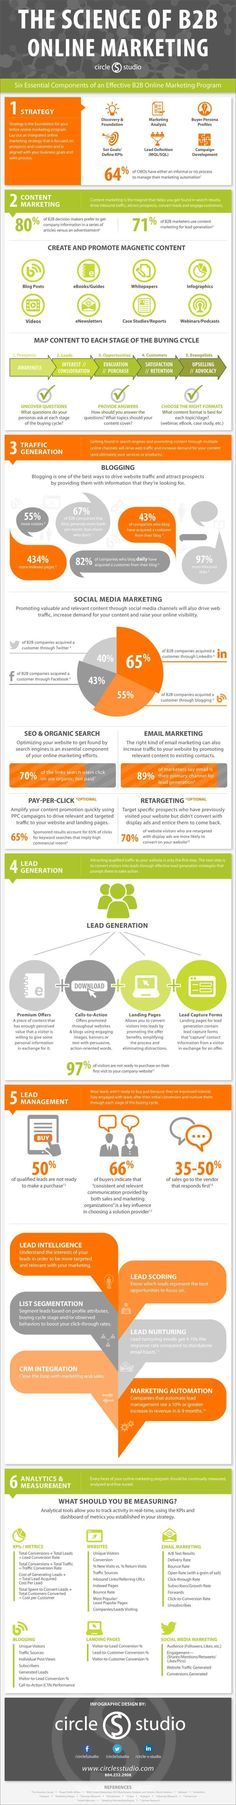 What Are 6 Components You Need For Successful B2B Online Marketing And Social Selling? #Infographic